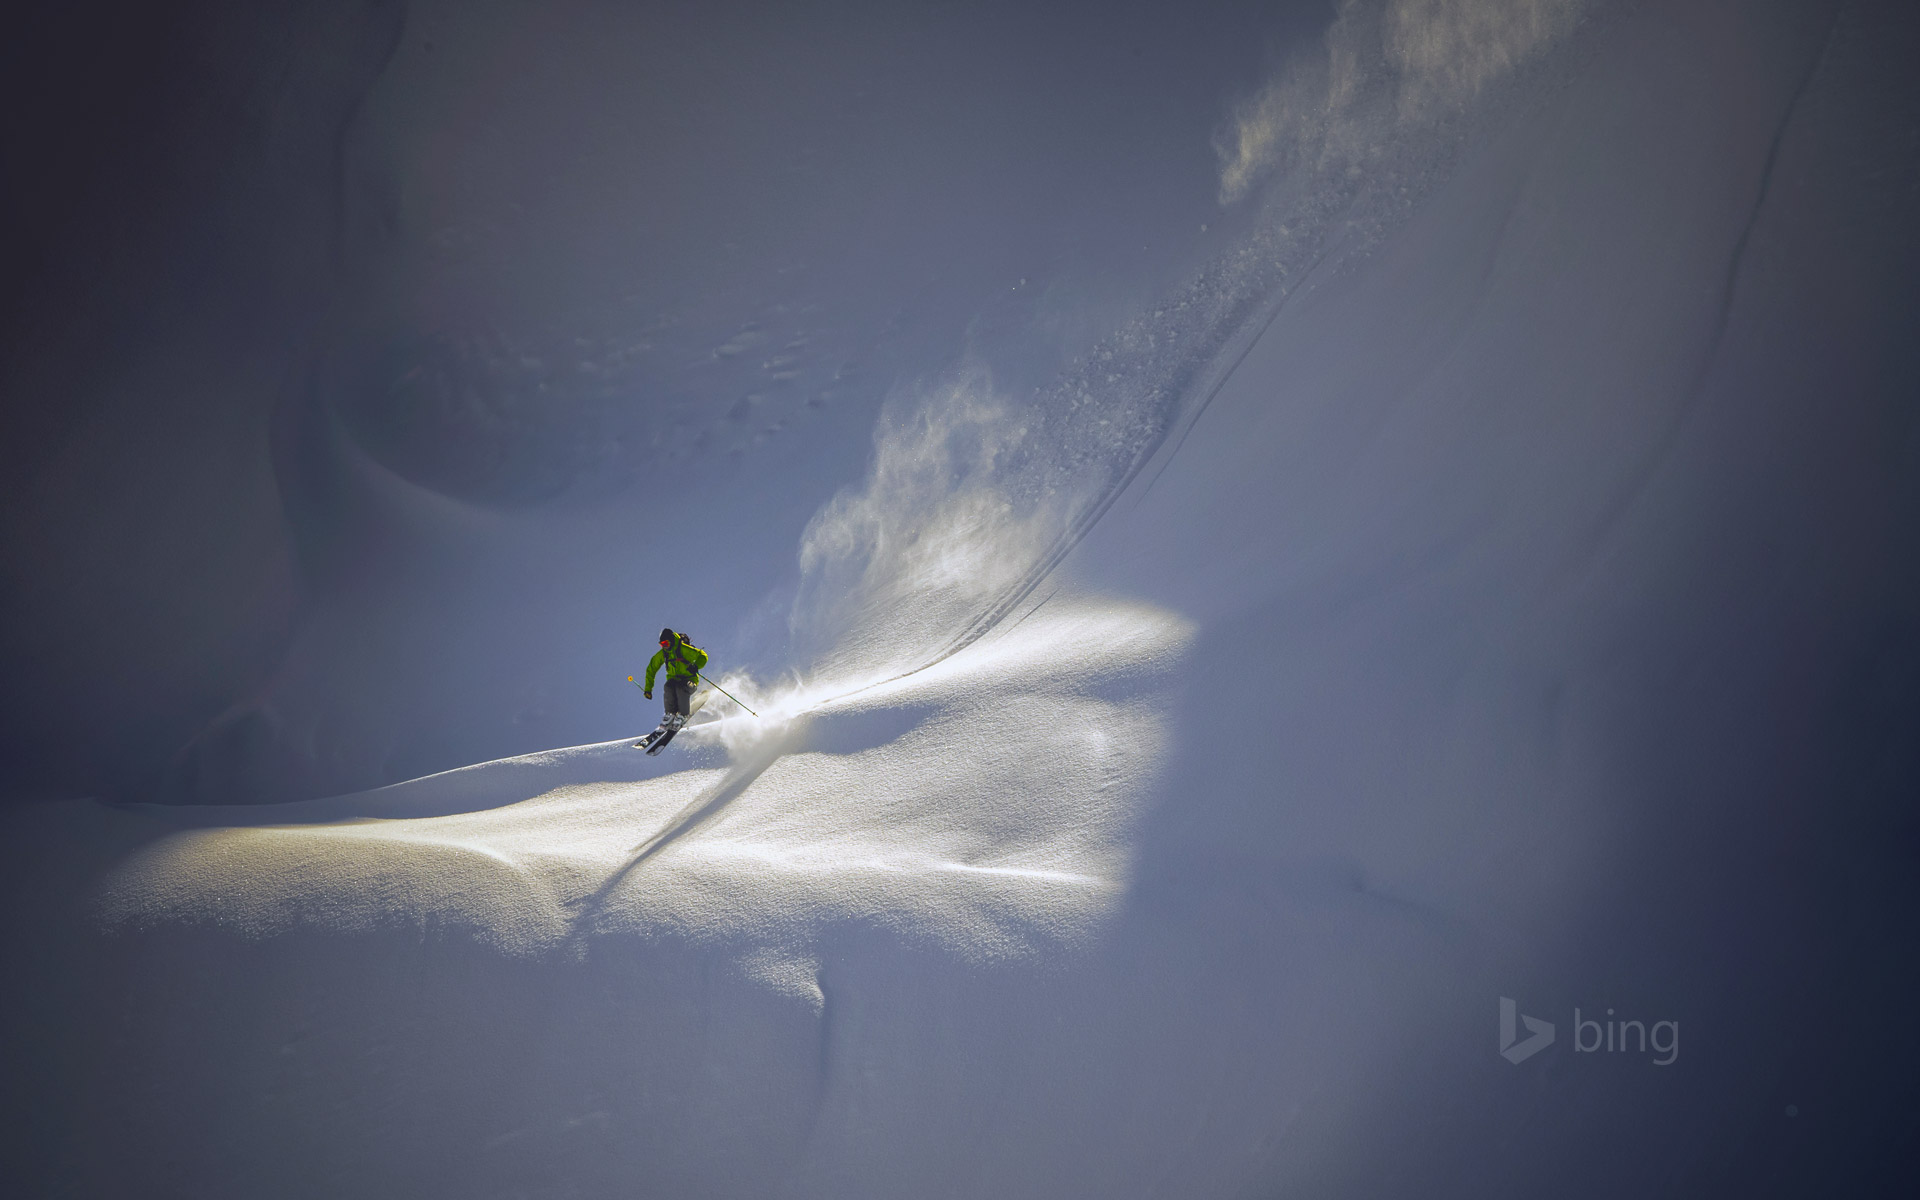 Backcountry skier near Mt. Baker Ski Area, North Cascades National Park, Washington